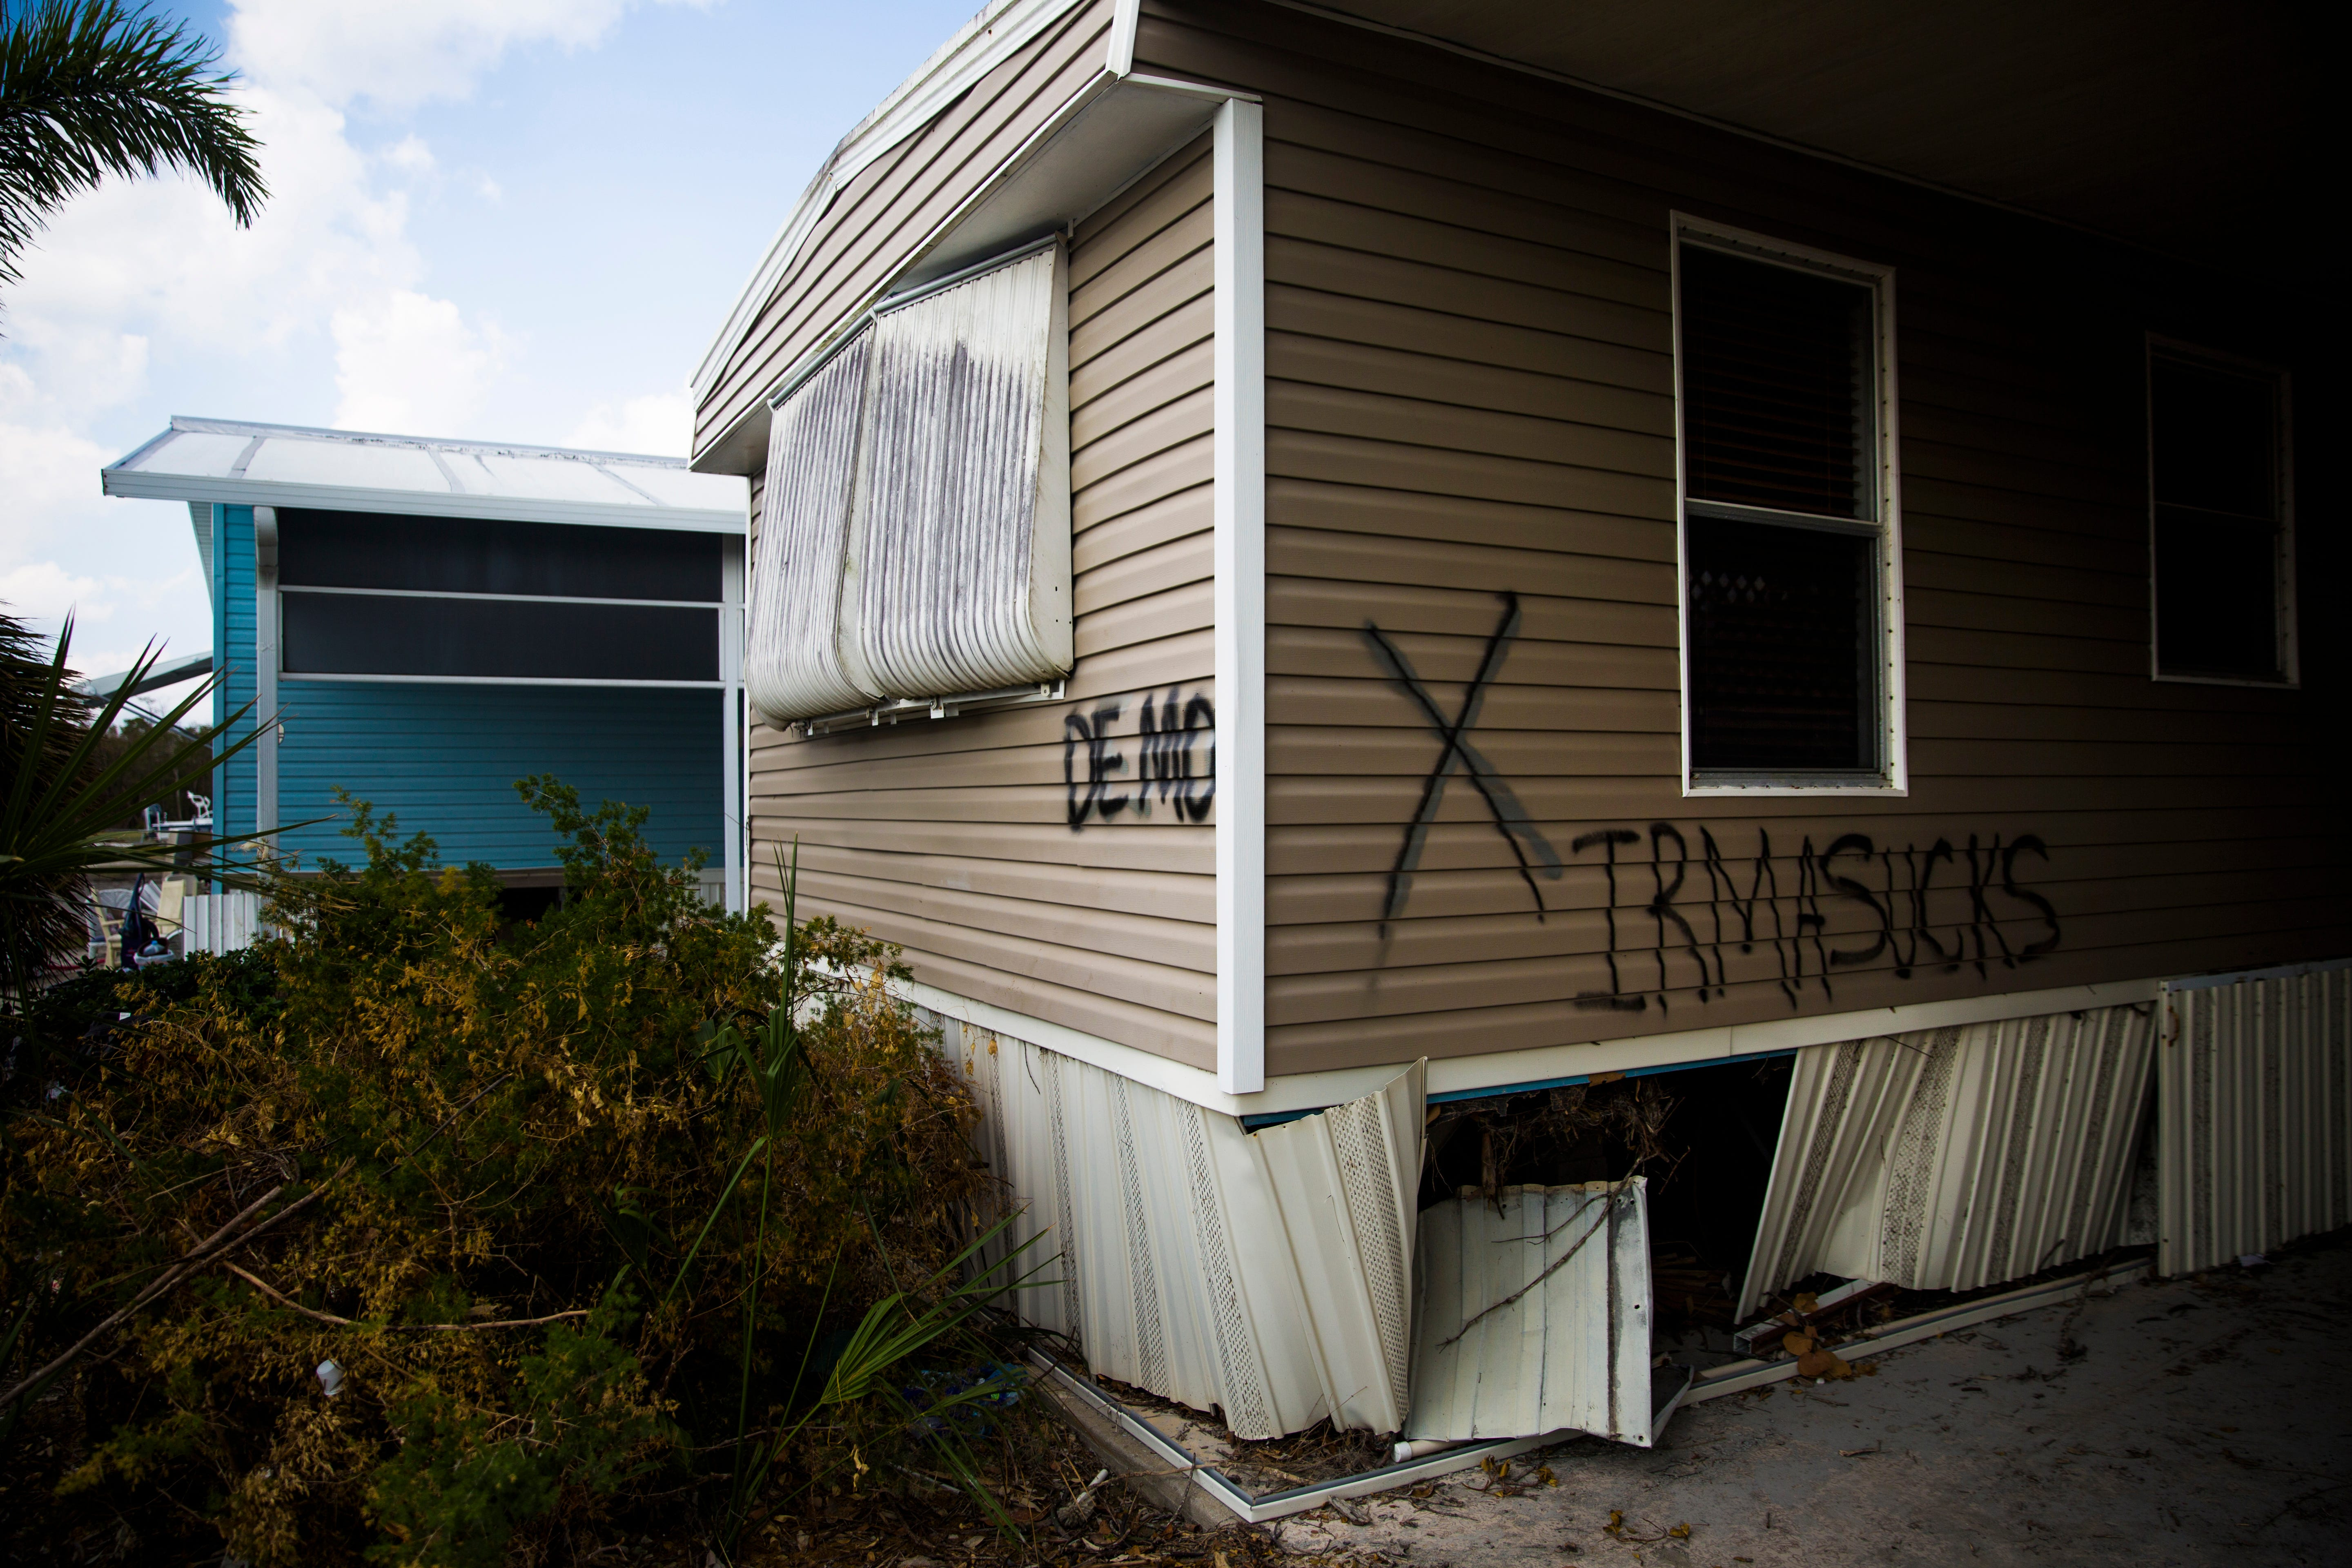 //www.naplesnews.com/story/news/politics/2017/10/31/swfl-man ... on 1986 single wide trailer, 16x80 clayton mobile home, 1986 victorian mobile home,